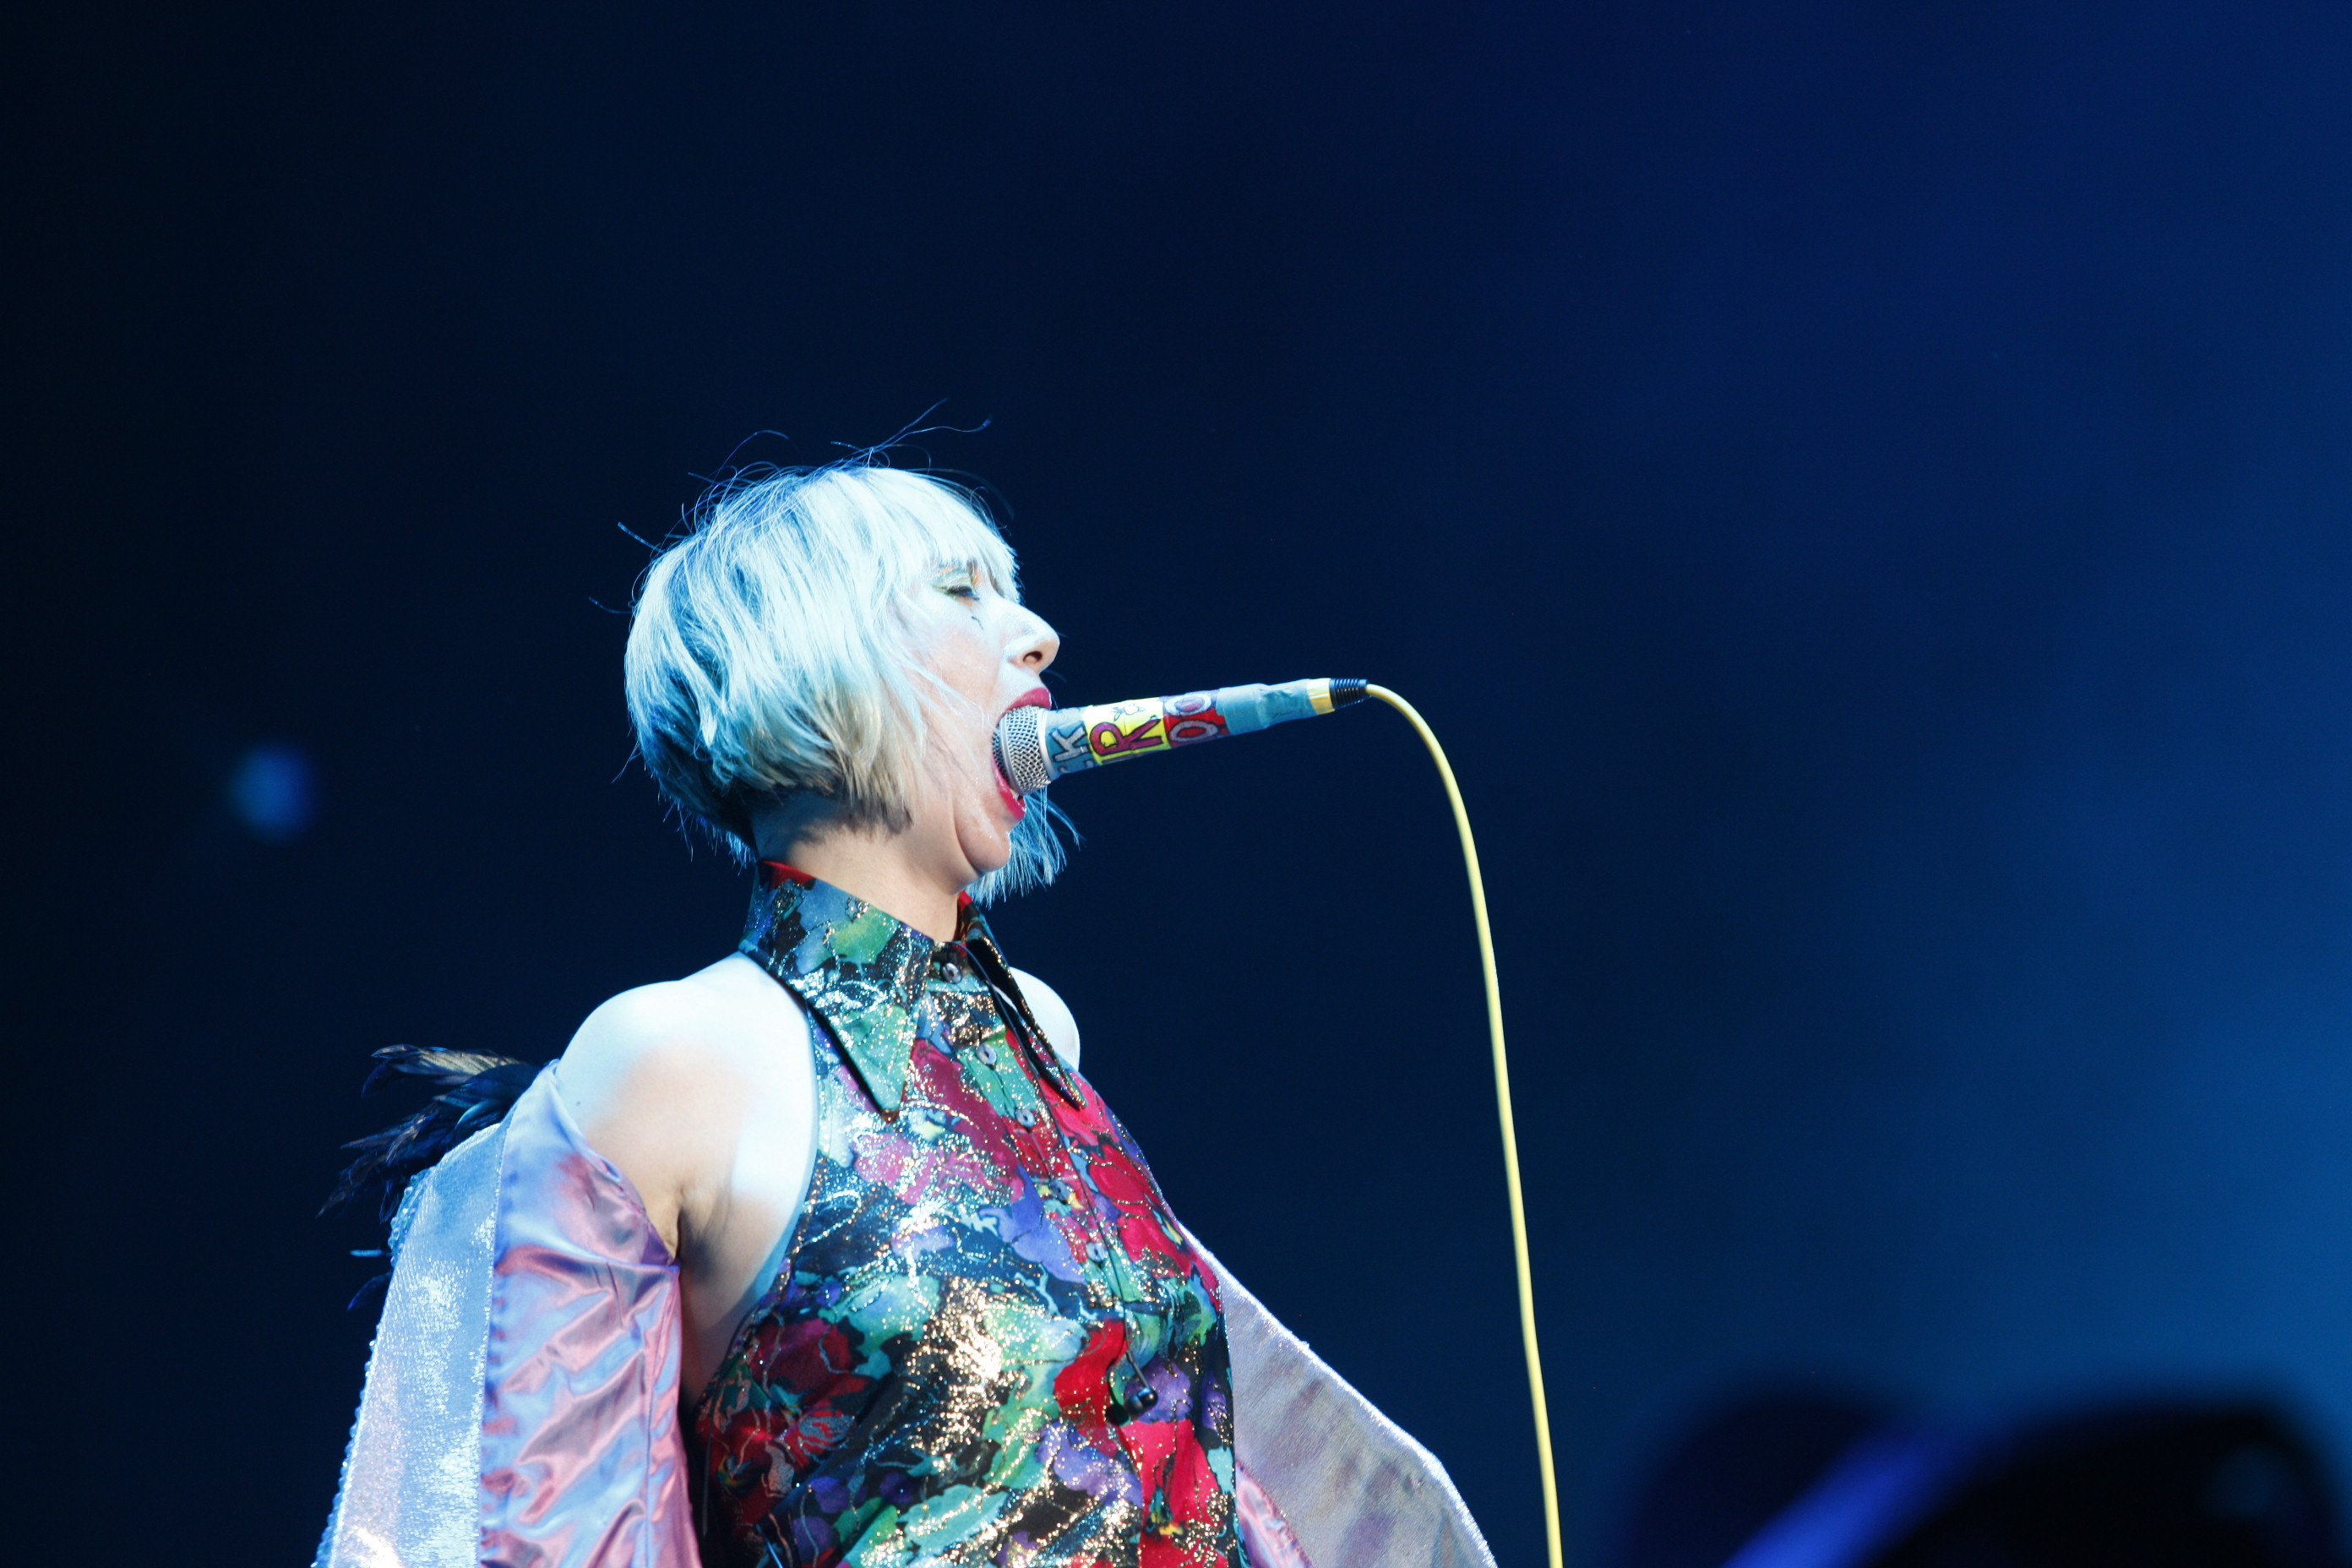 Sound On Sound Festival Announces 2017 Lineup Featuring Yeah Yeah Yeahs, Iggy Pop and Grizzly Bear